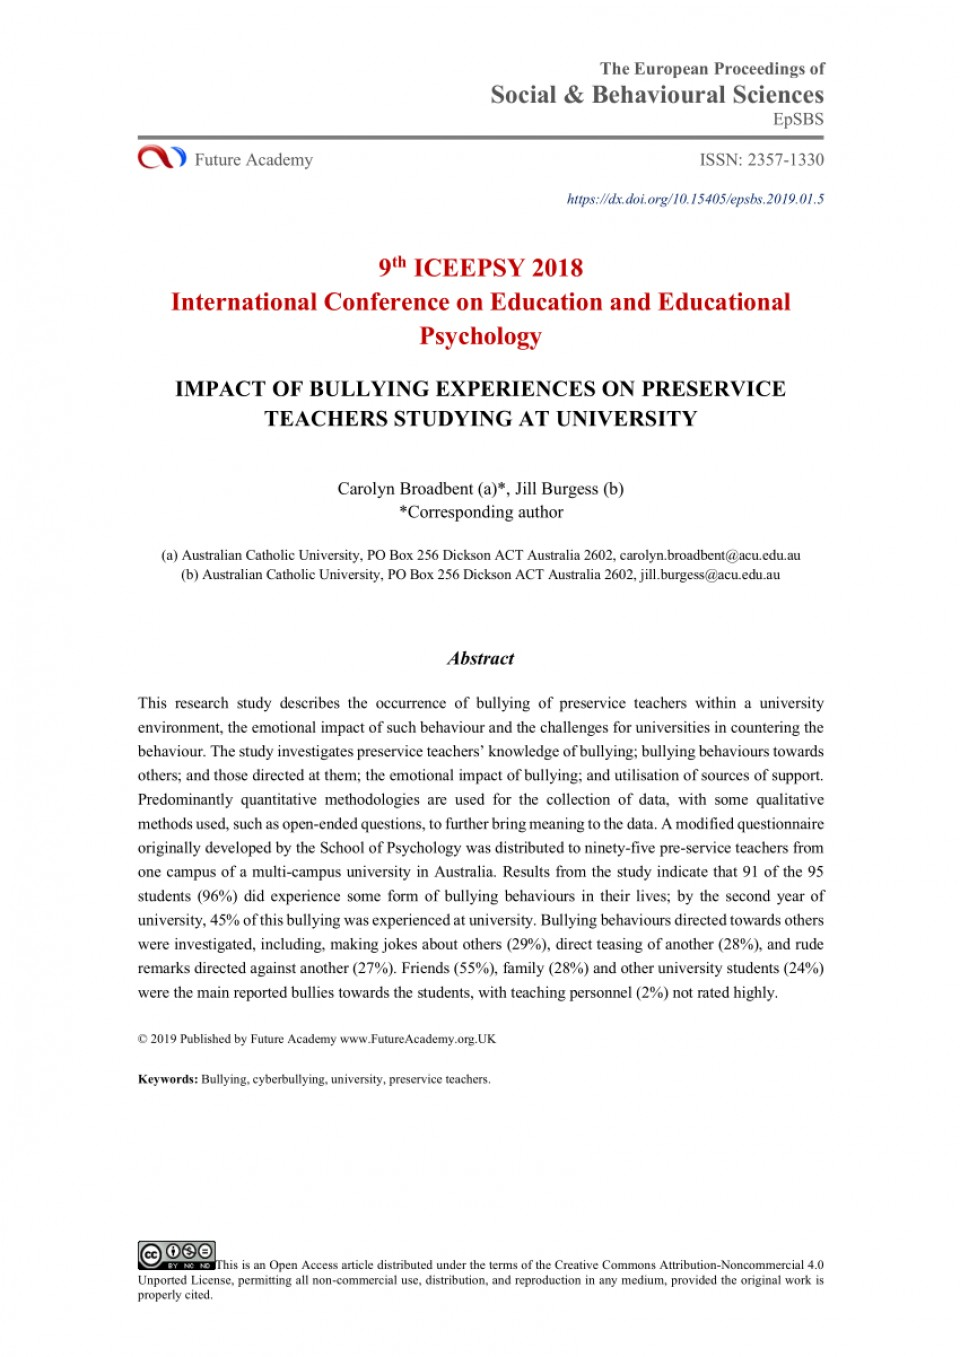 005 Research Paper Psychological Effects Of Bullying Breathtaking 960